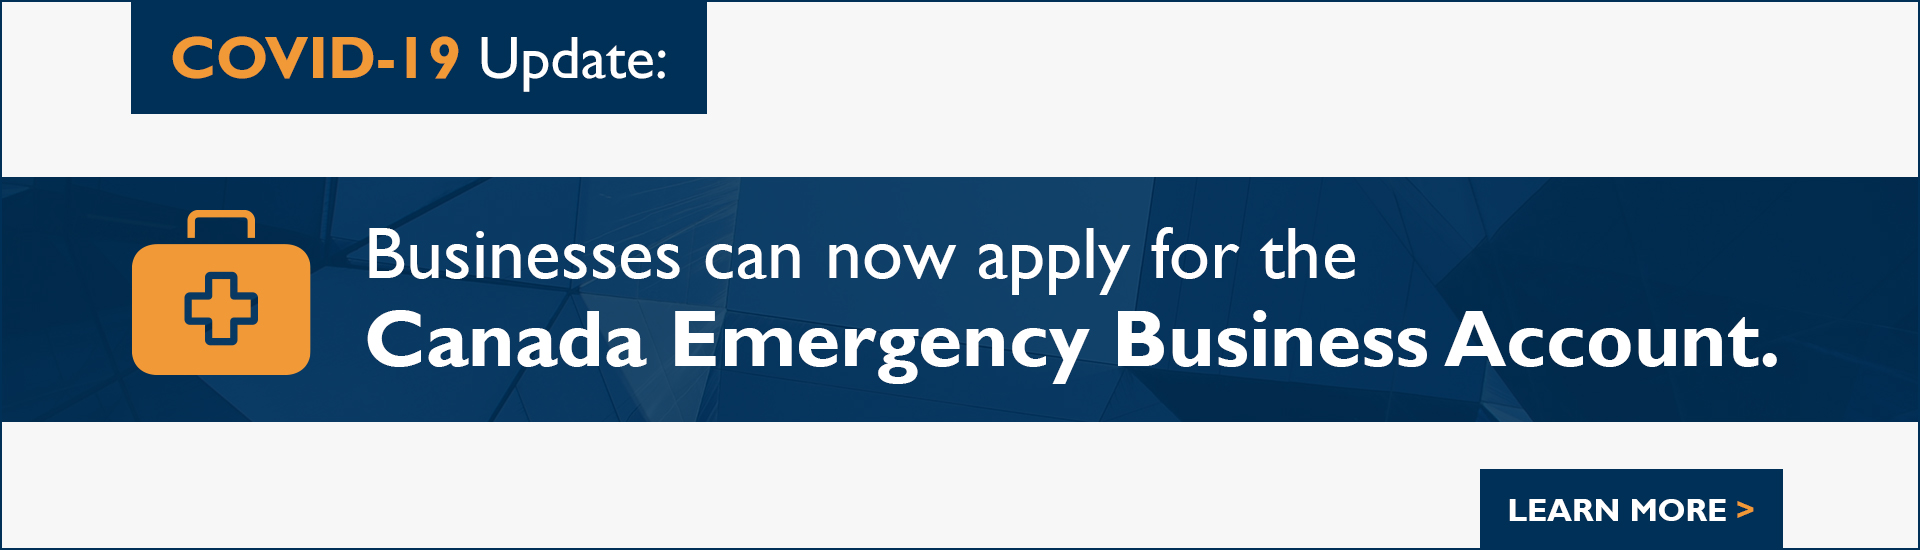 Canada Emergency Business Account